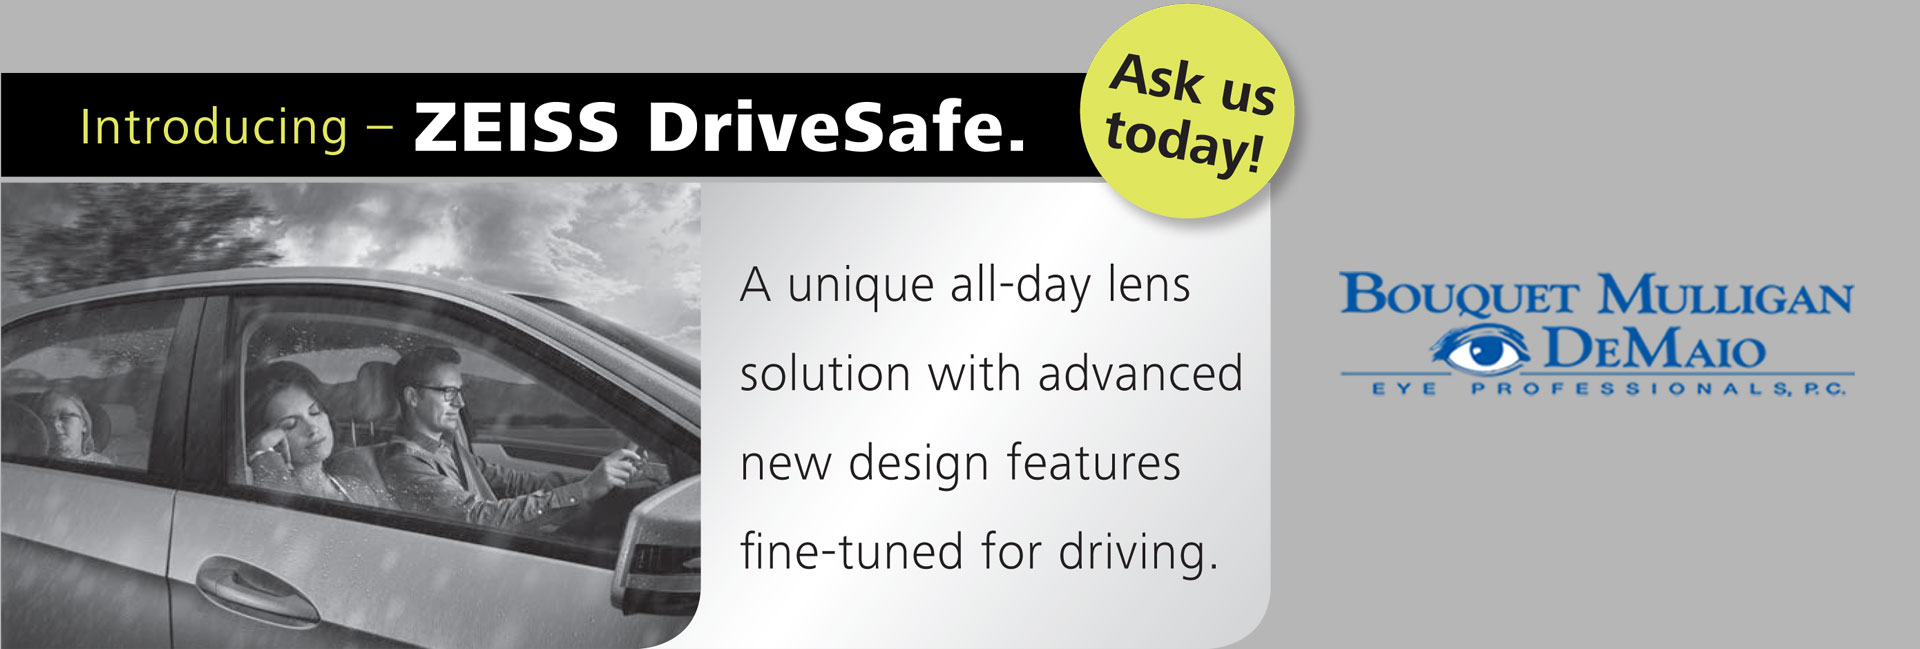 zeiss-drive-safe